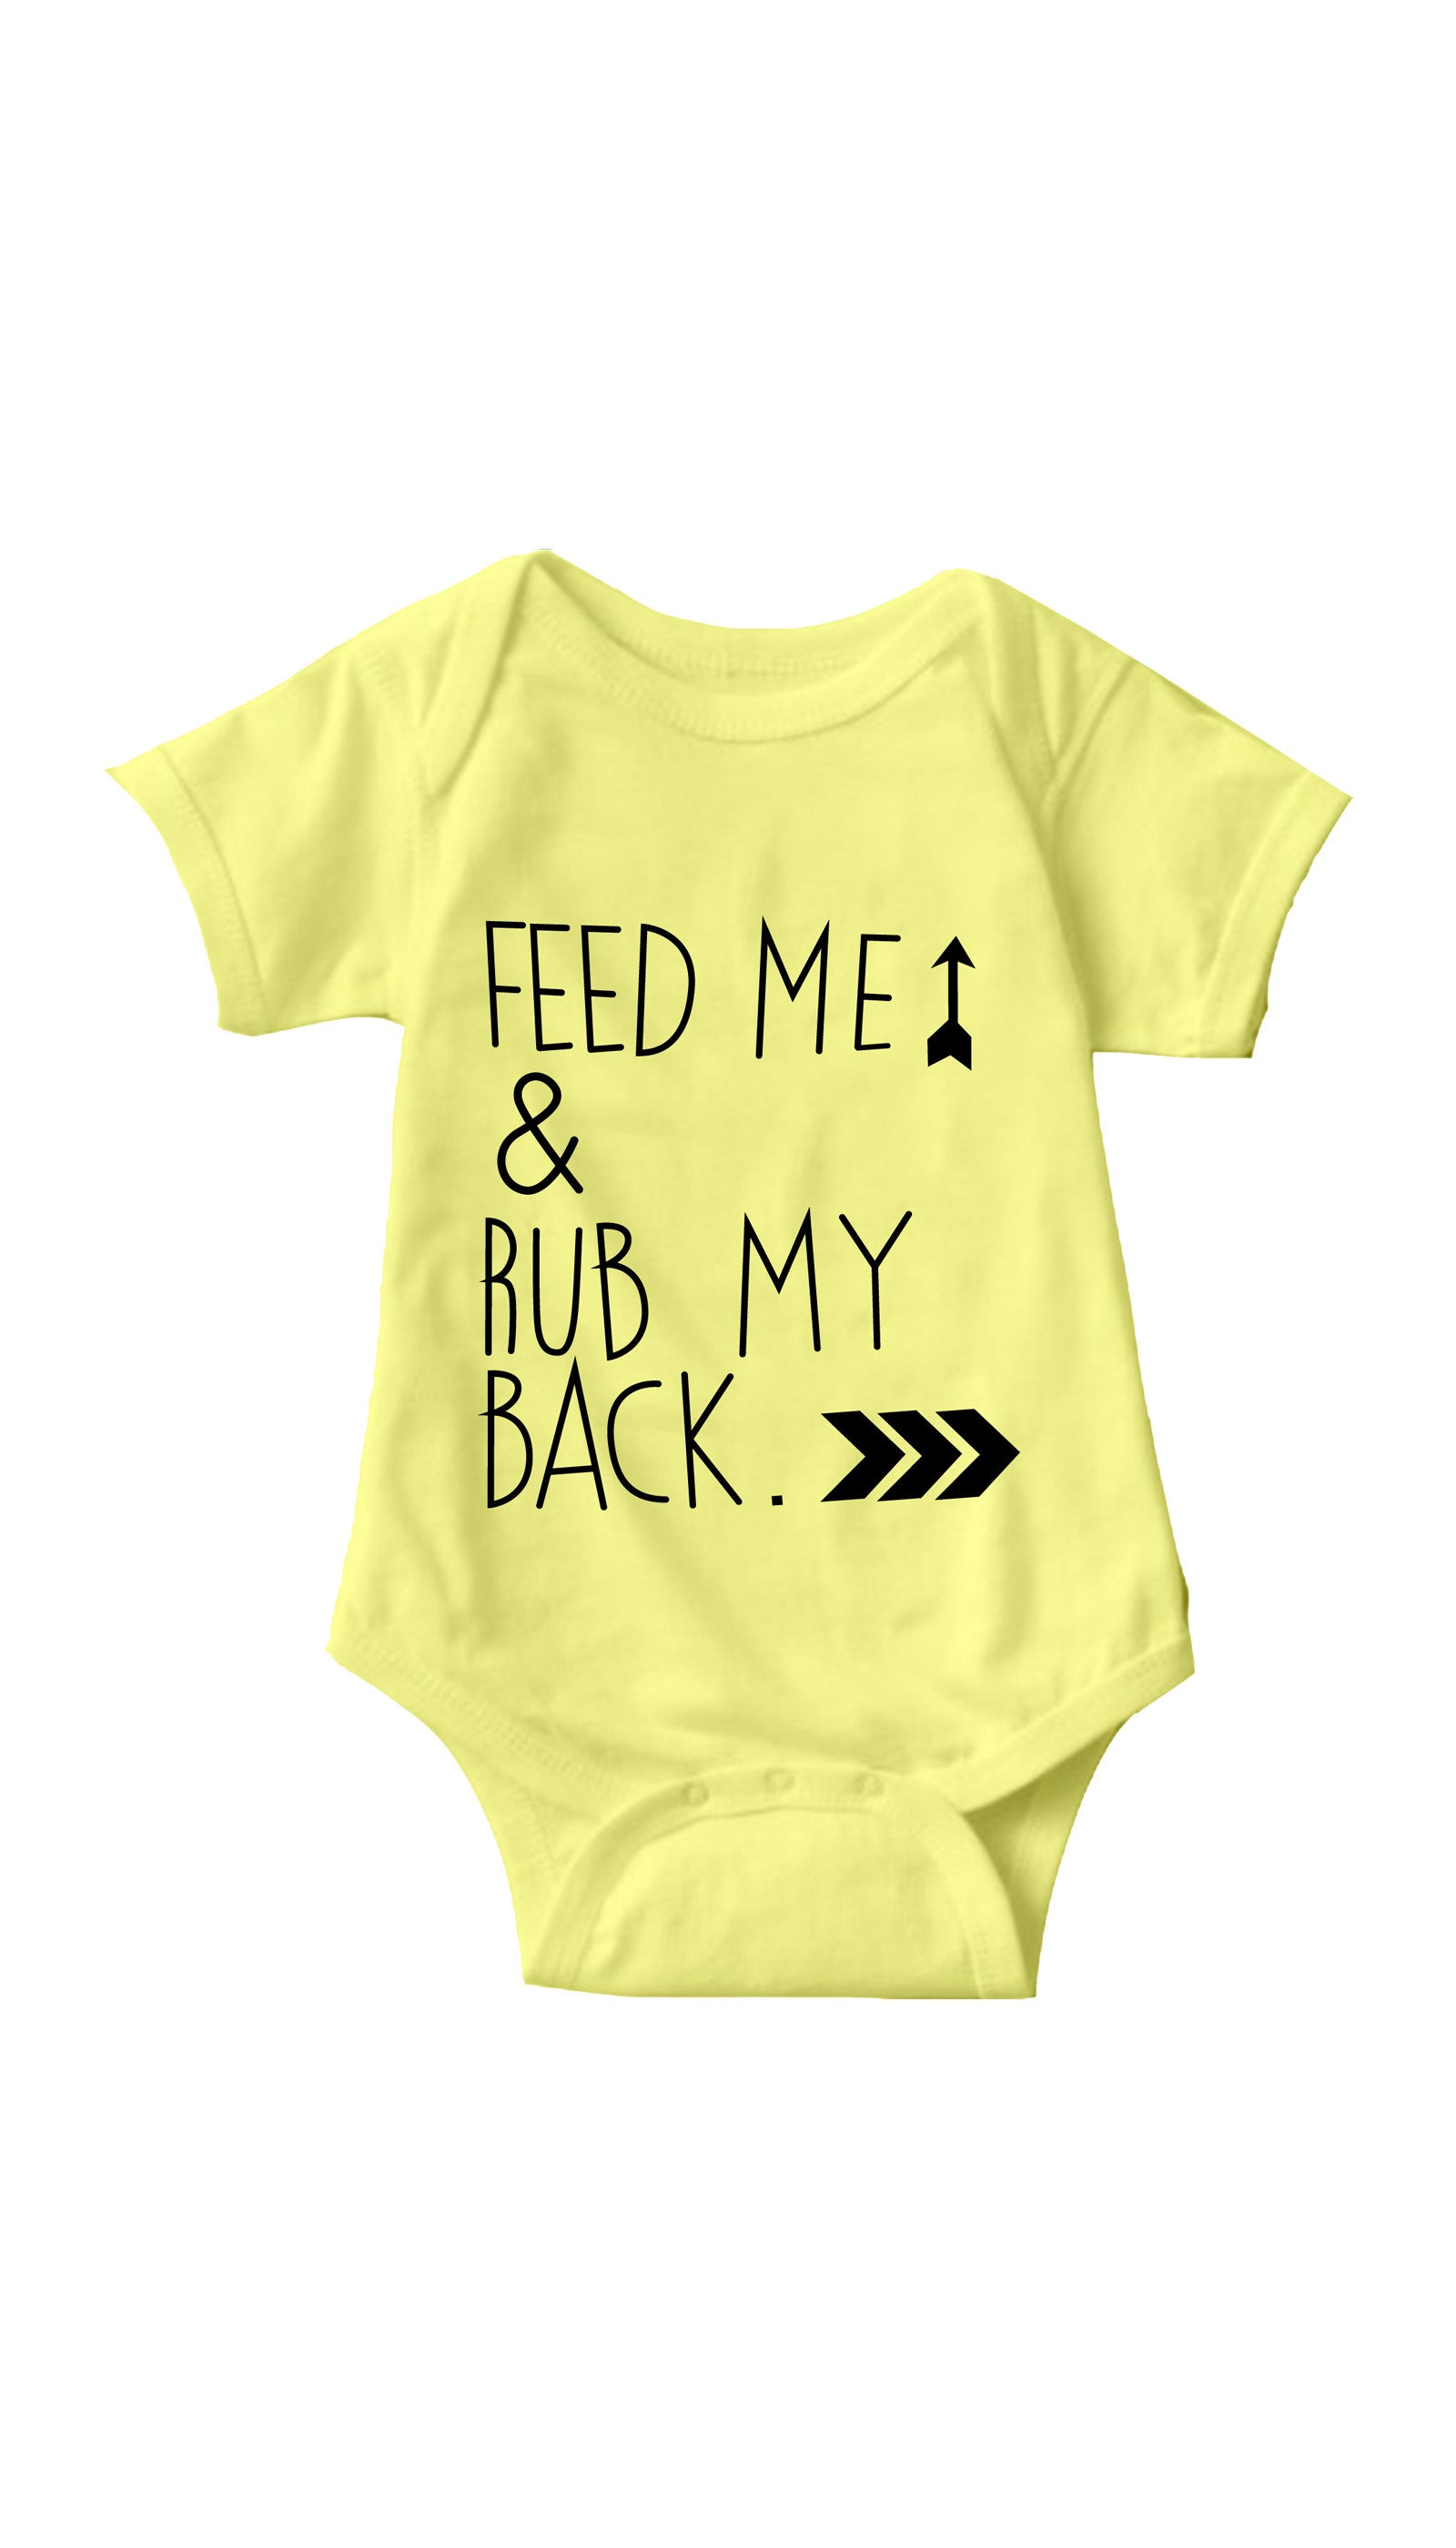 Feed Me & Rub My Back Yellow Infant Onesie | Sarcastic ME